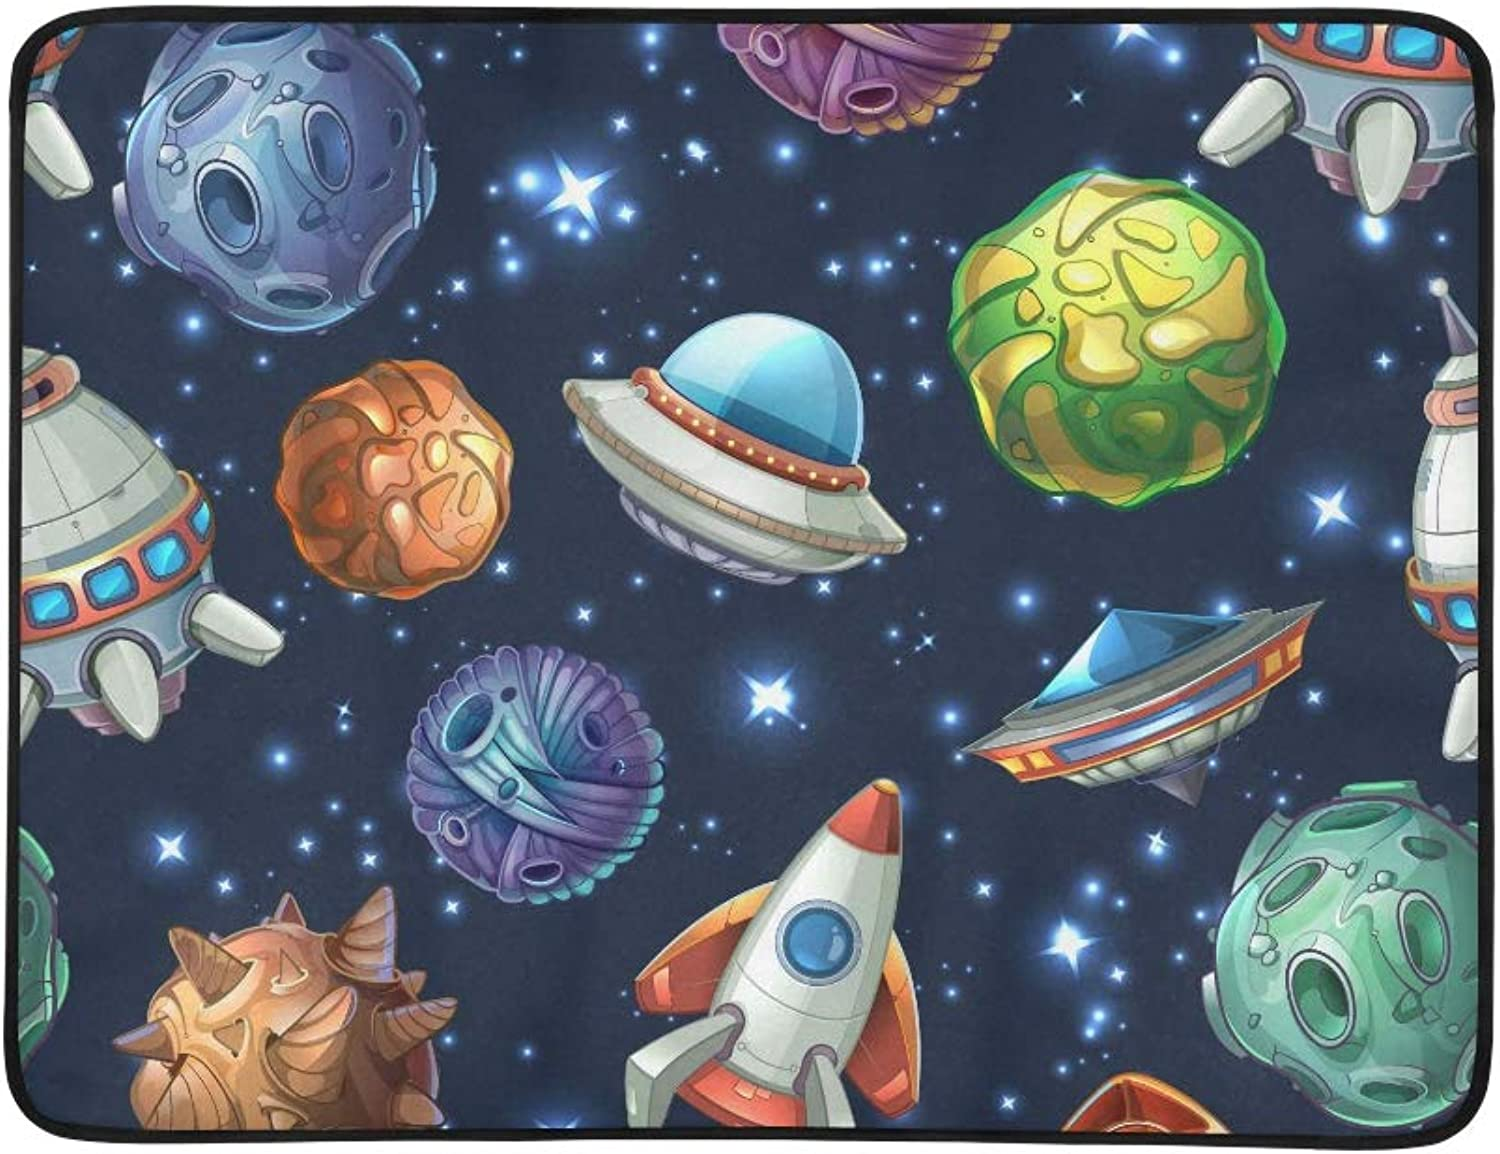 Comic Space Planets and Spaceships Origin Pattern Portable and Foldable Blanket Mat 60x78 Inch Handy Mat for Camping Picnic Beach Indoor Outdoor Travel